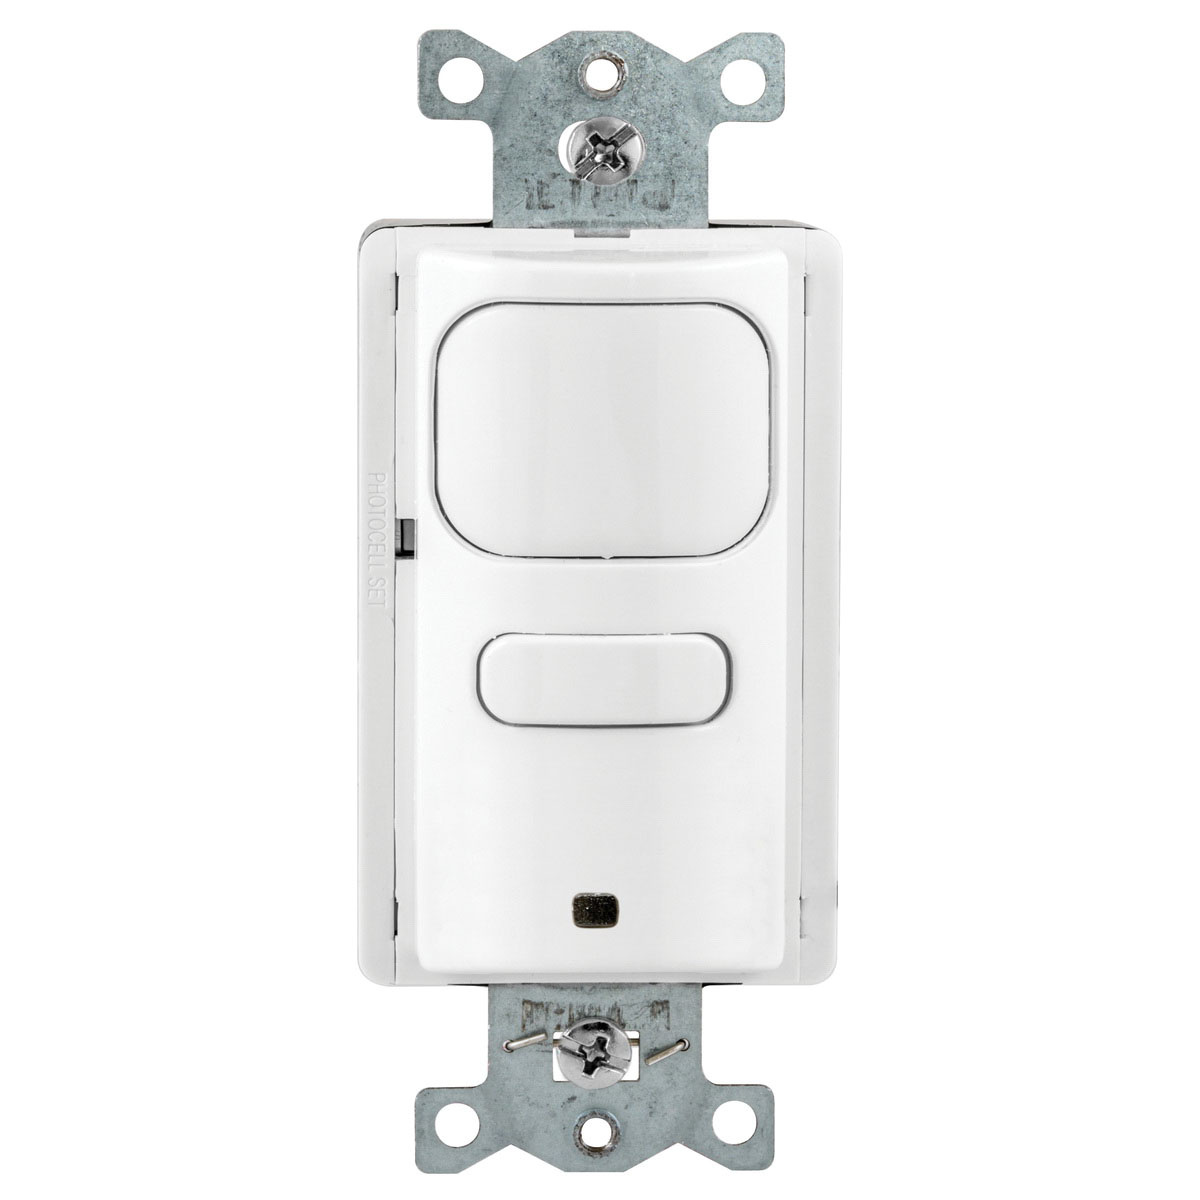 hubbell-wiring ap2000w1 adaptive technology manual/auto passive infrared  wall switch sensor 1000-sq-ft 120/277-volt ac white h-moss® -  occupancy/vacancy